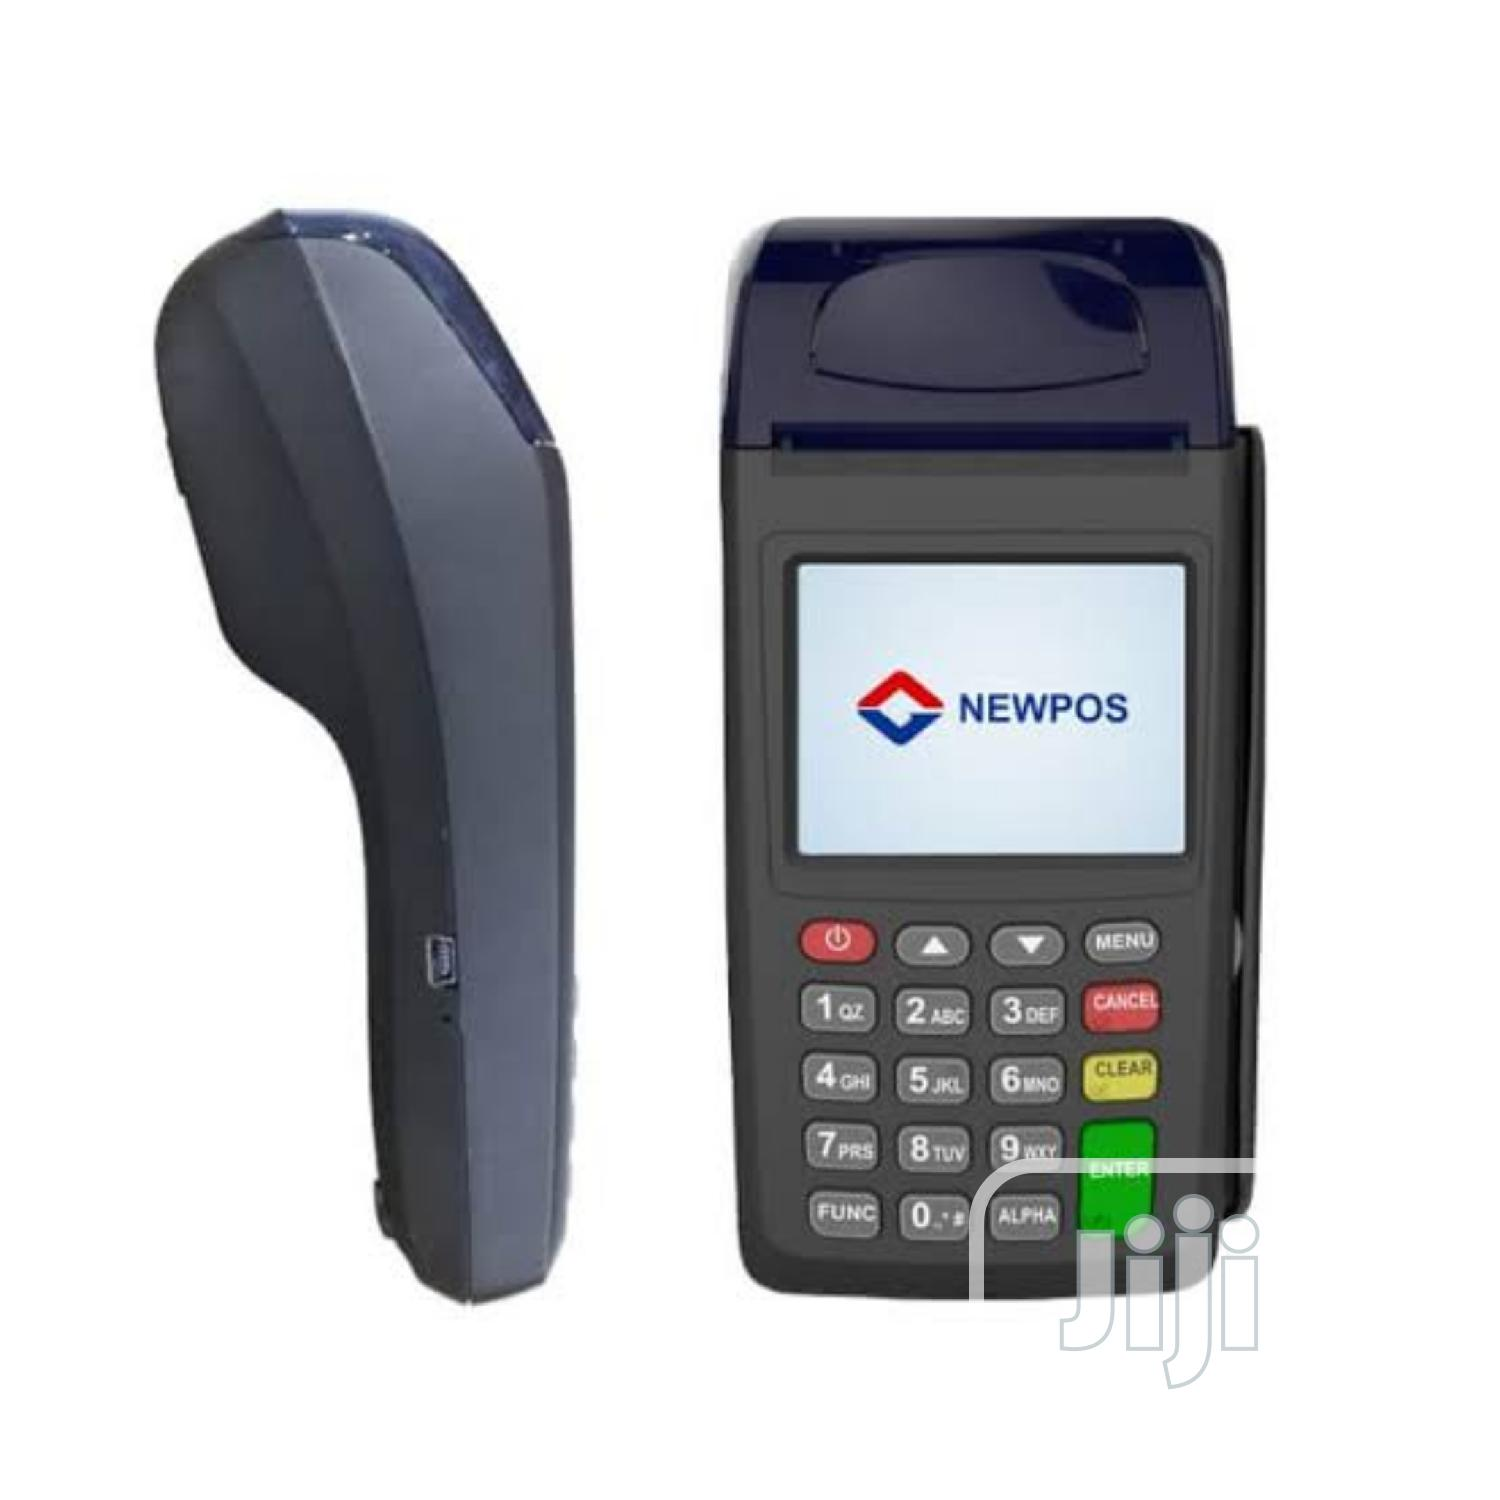 Brand New Pos 7210 With Inbuilt Printer | Store Equipment for sale in Ikorodu, Lagos State, Nigeria